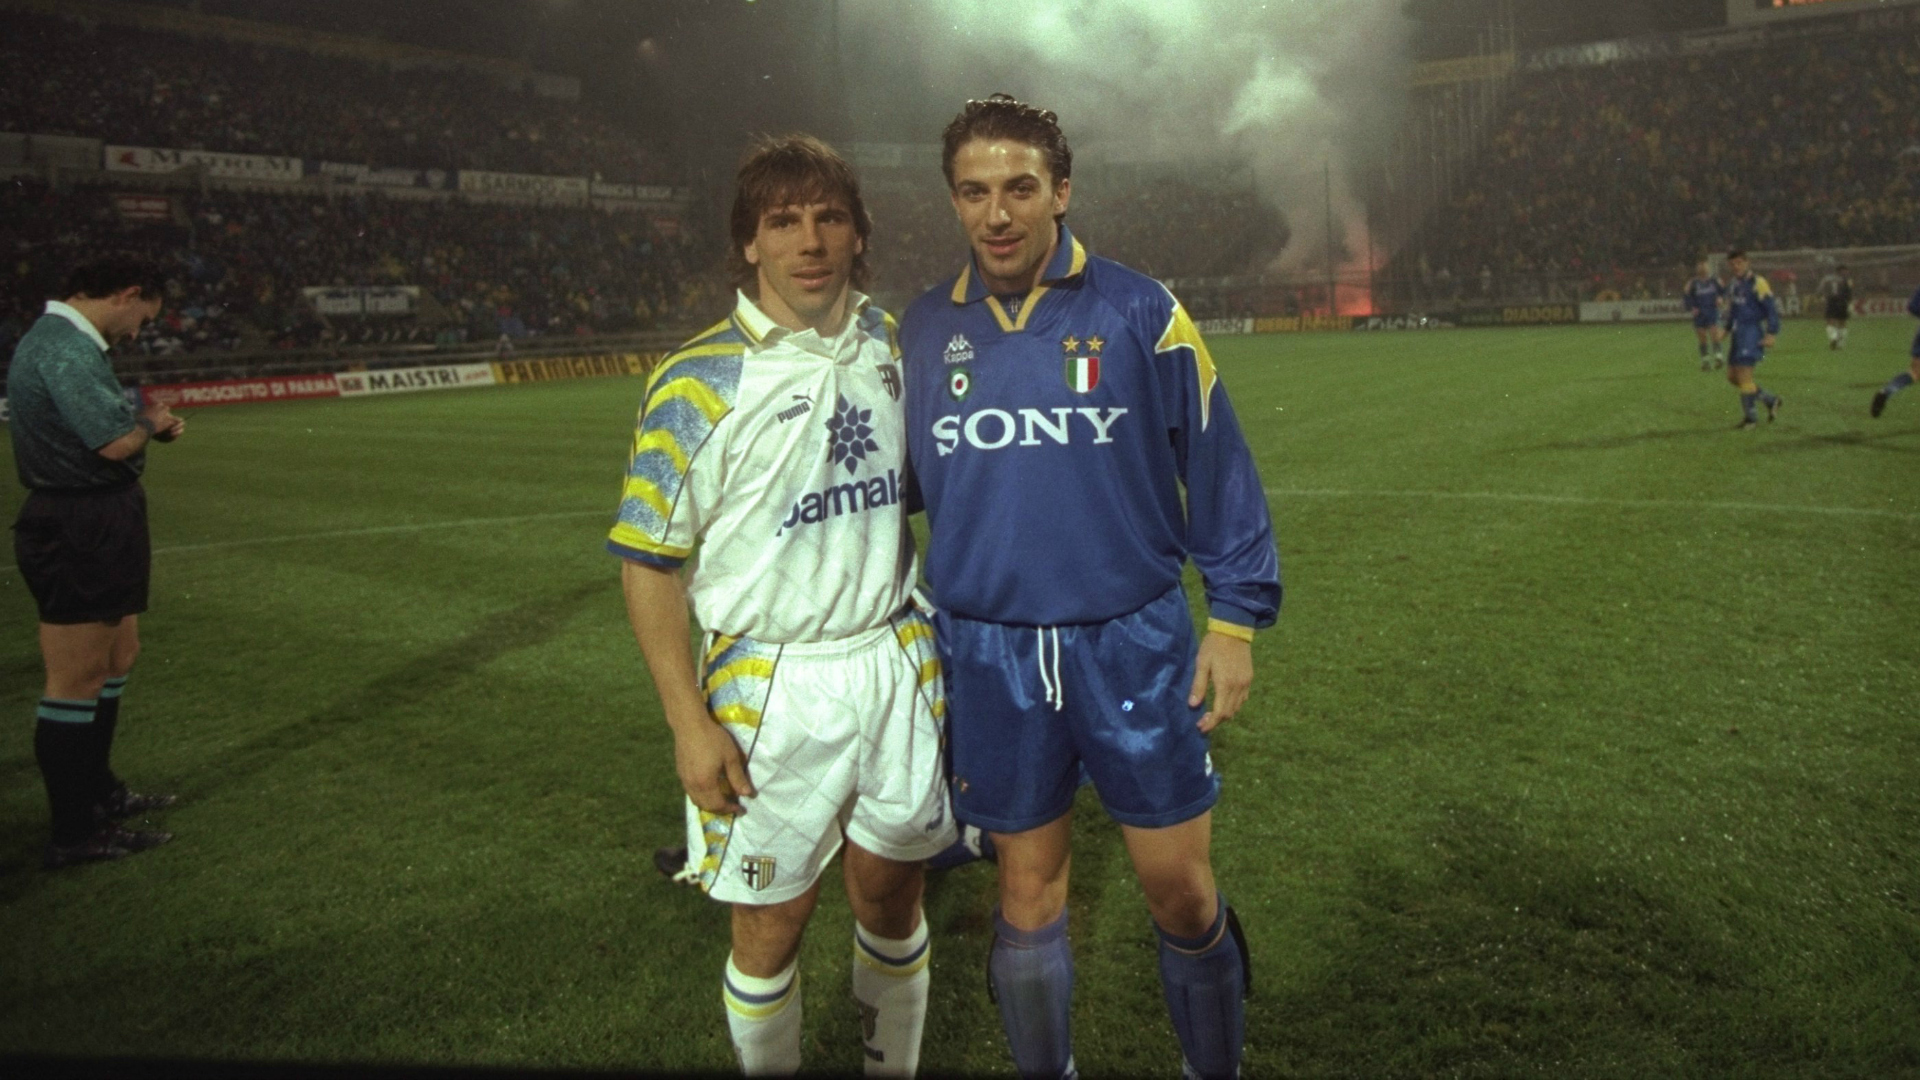 Zola and Del Piero, Parma v Juventus